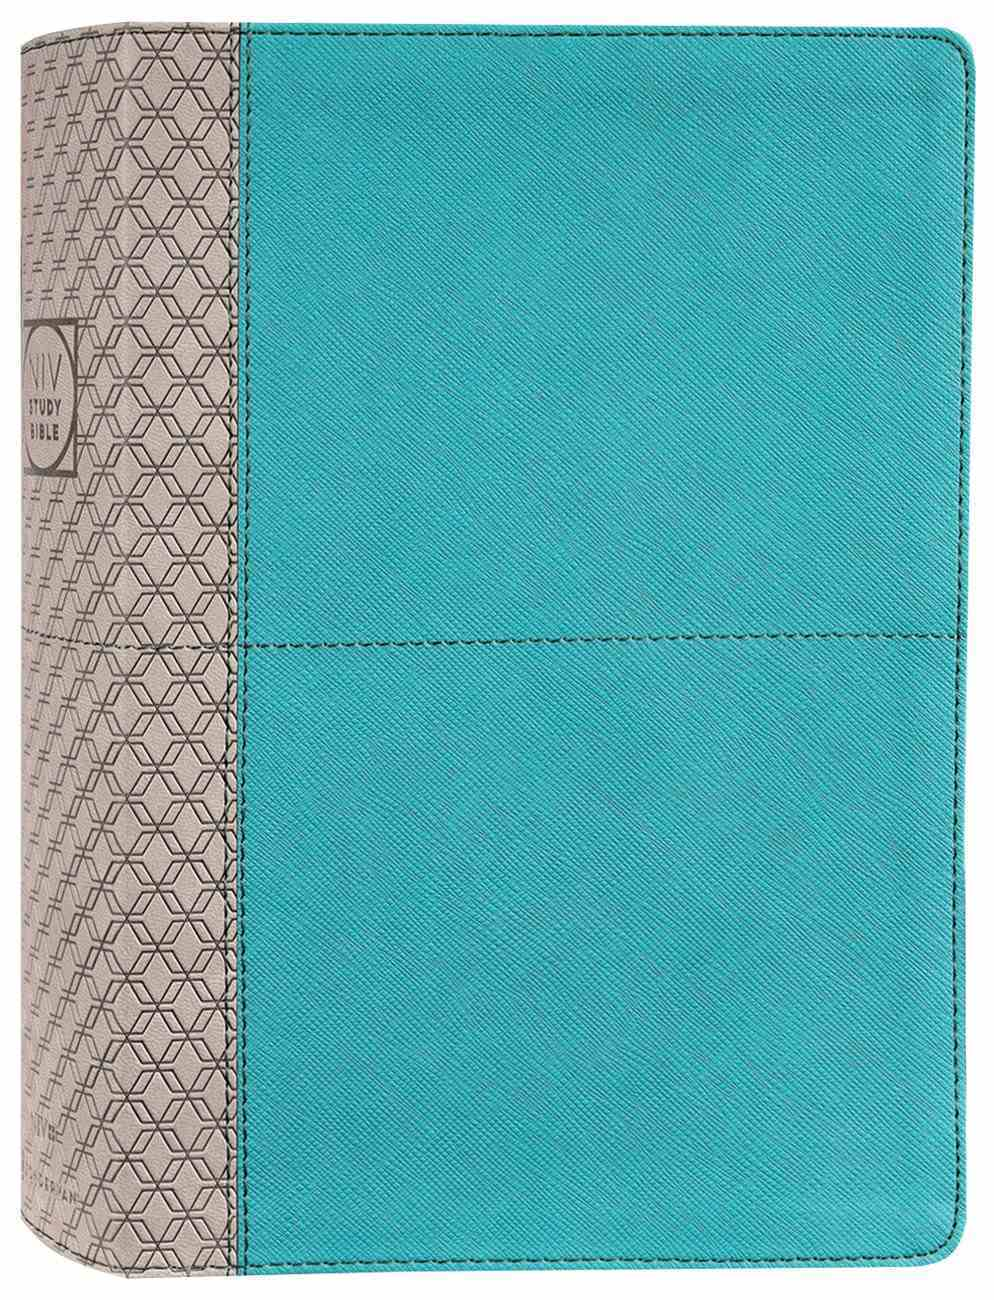 NIV Study Bible Teal/Grey Indexed (Red Letter Edition) Fully Revised Edition (2020) Premium Imitation Leather